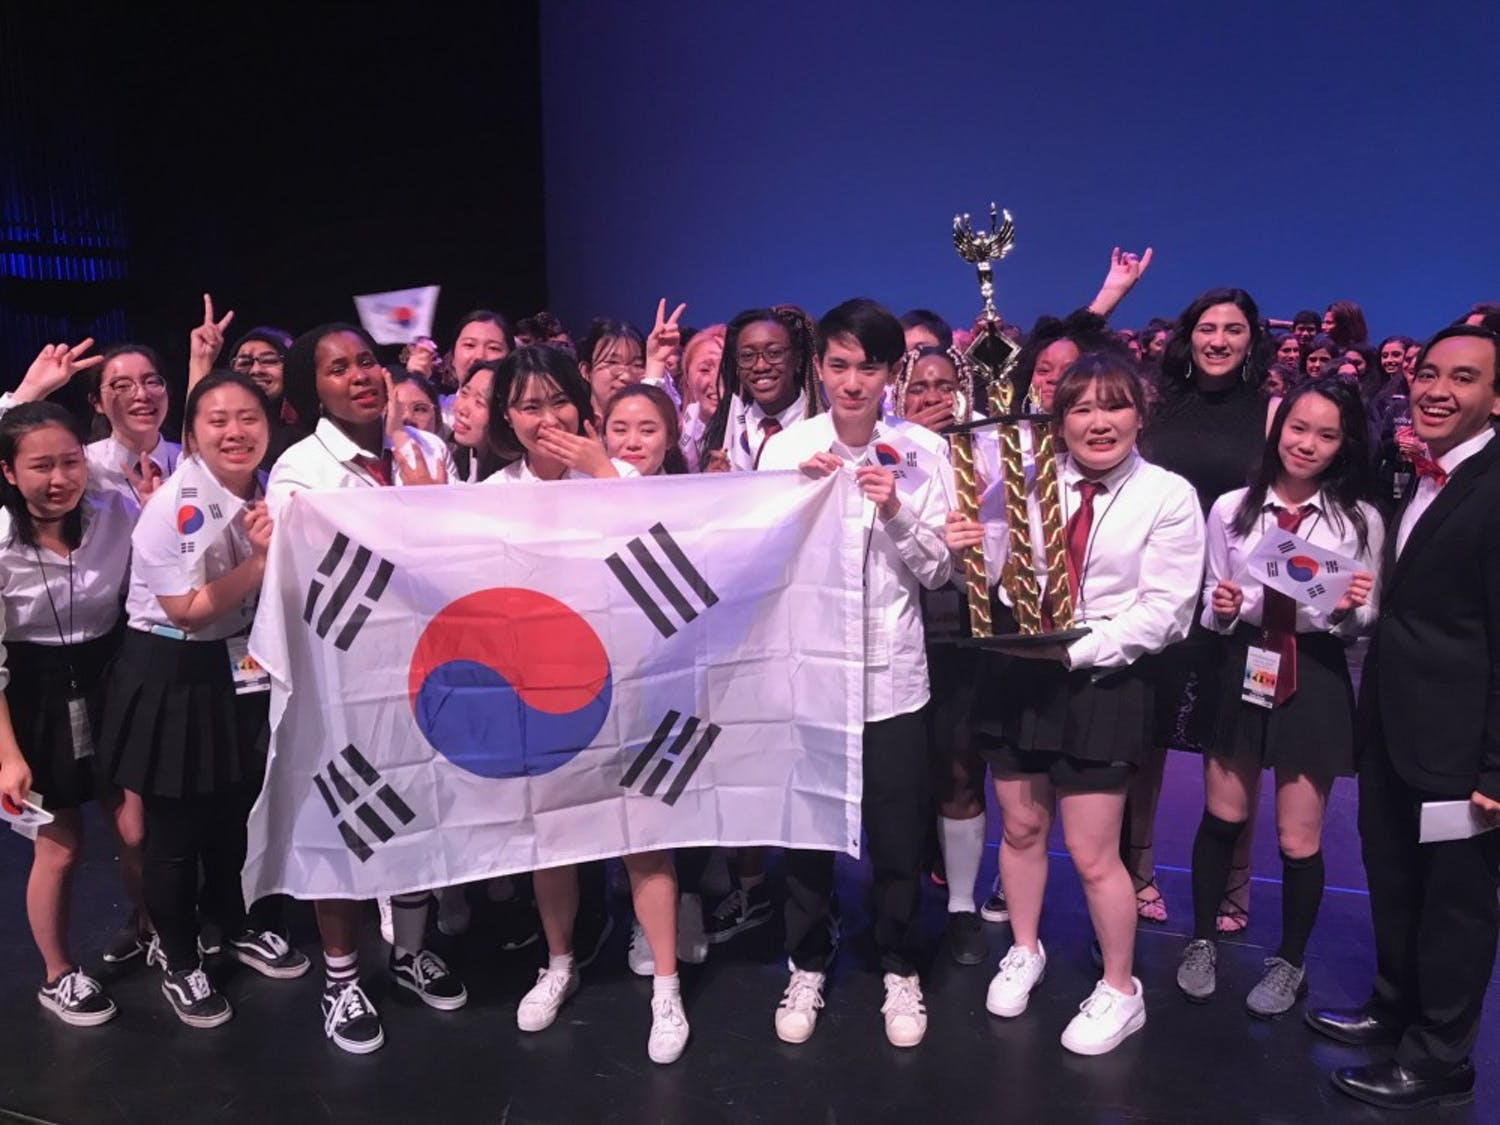 The Korean Student Association accepts the first place trophy at the 2019 International Fiesta.